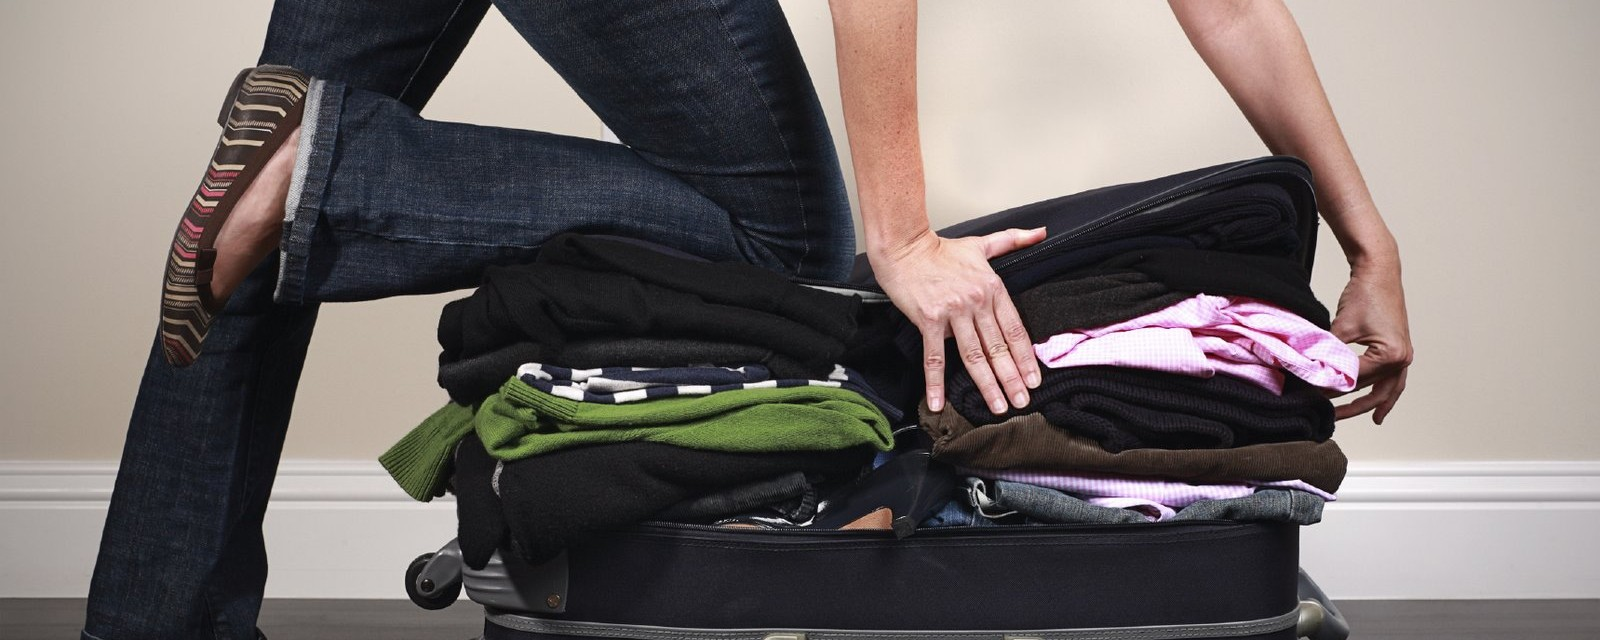 These 9 essential multipurpose travel items are a must pack